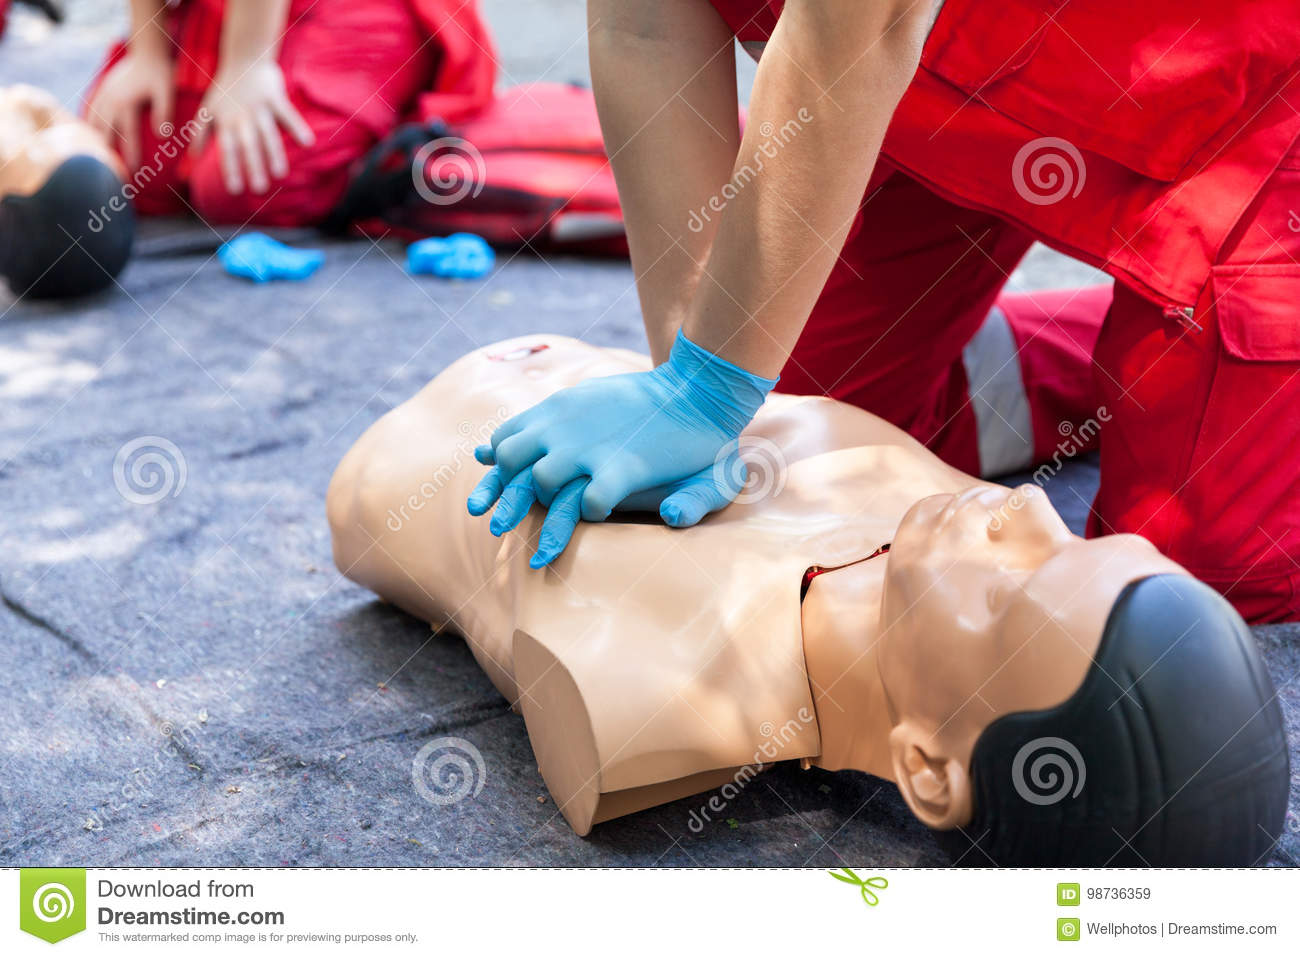 First aid. CPR.